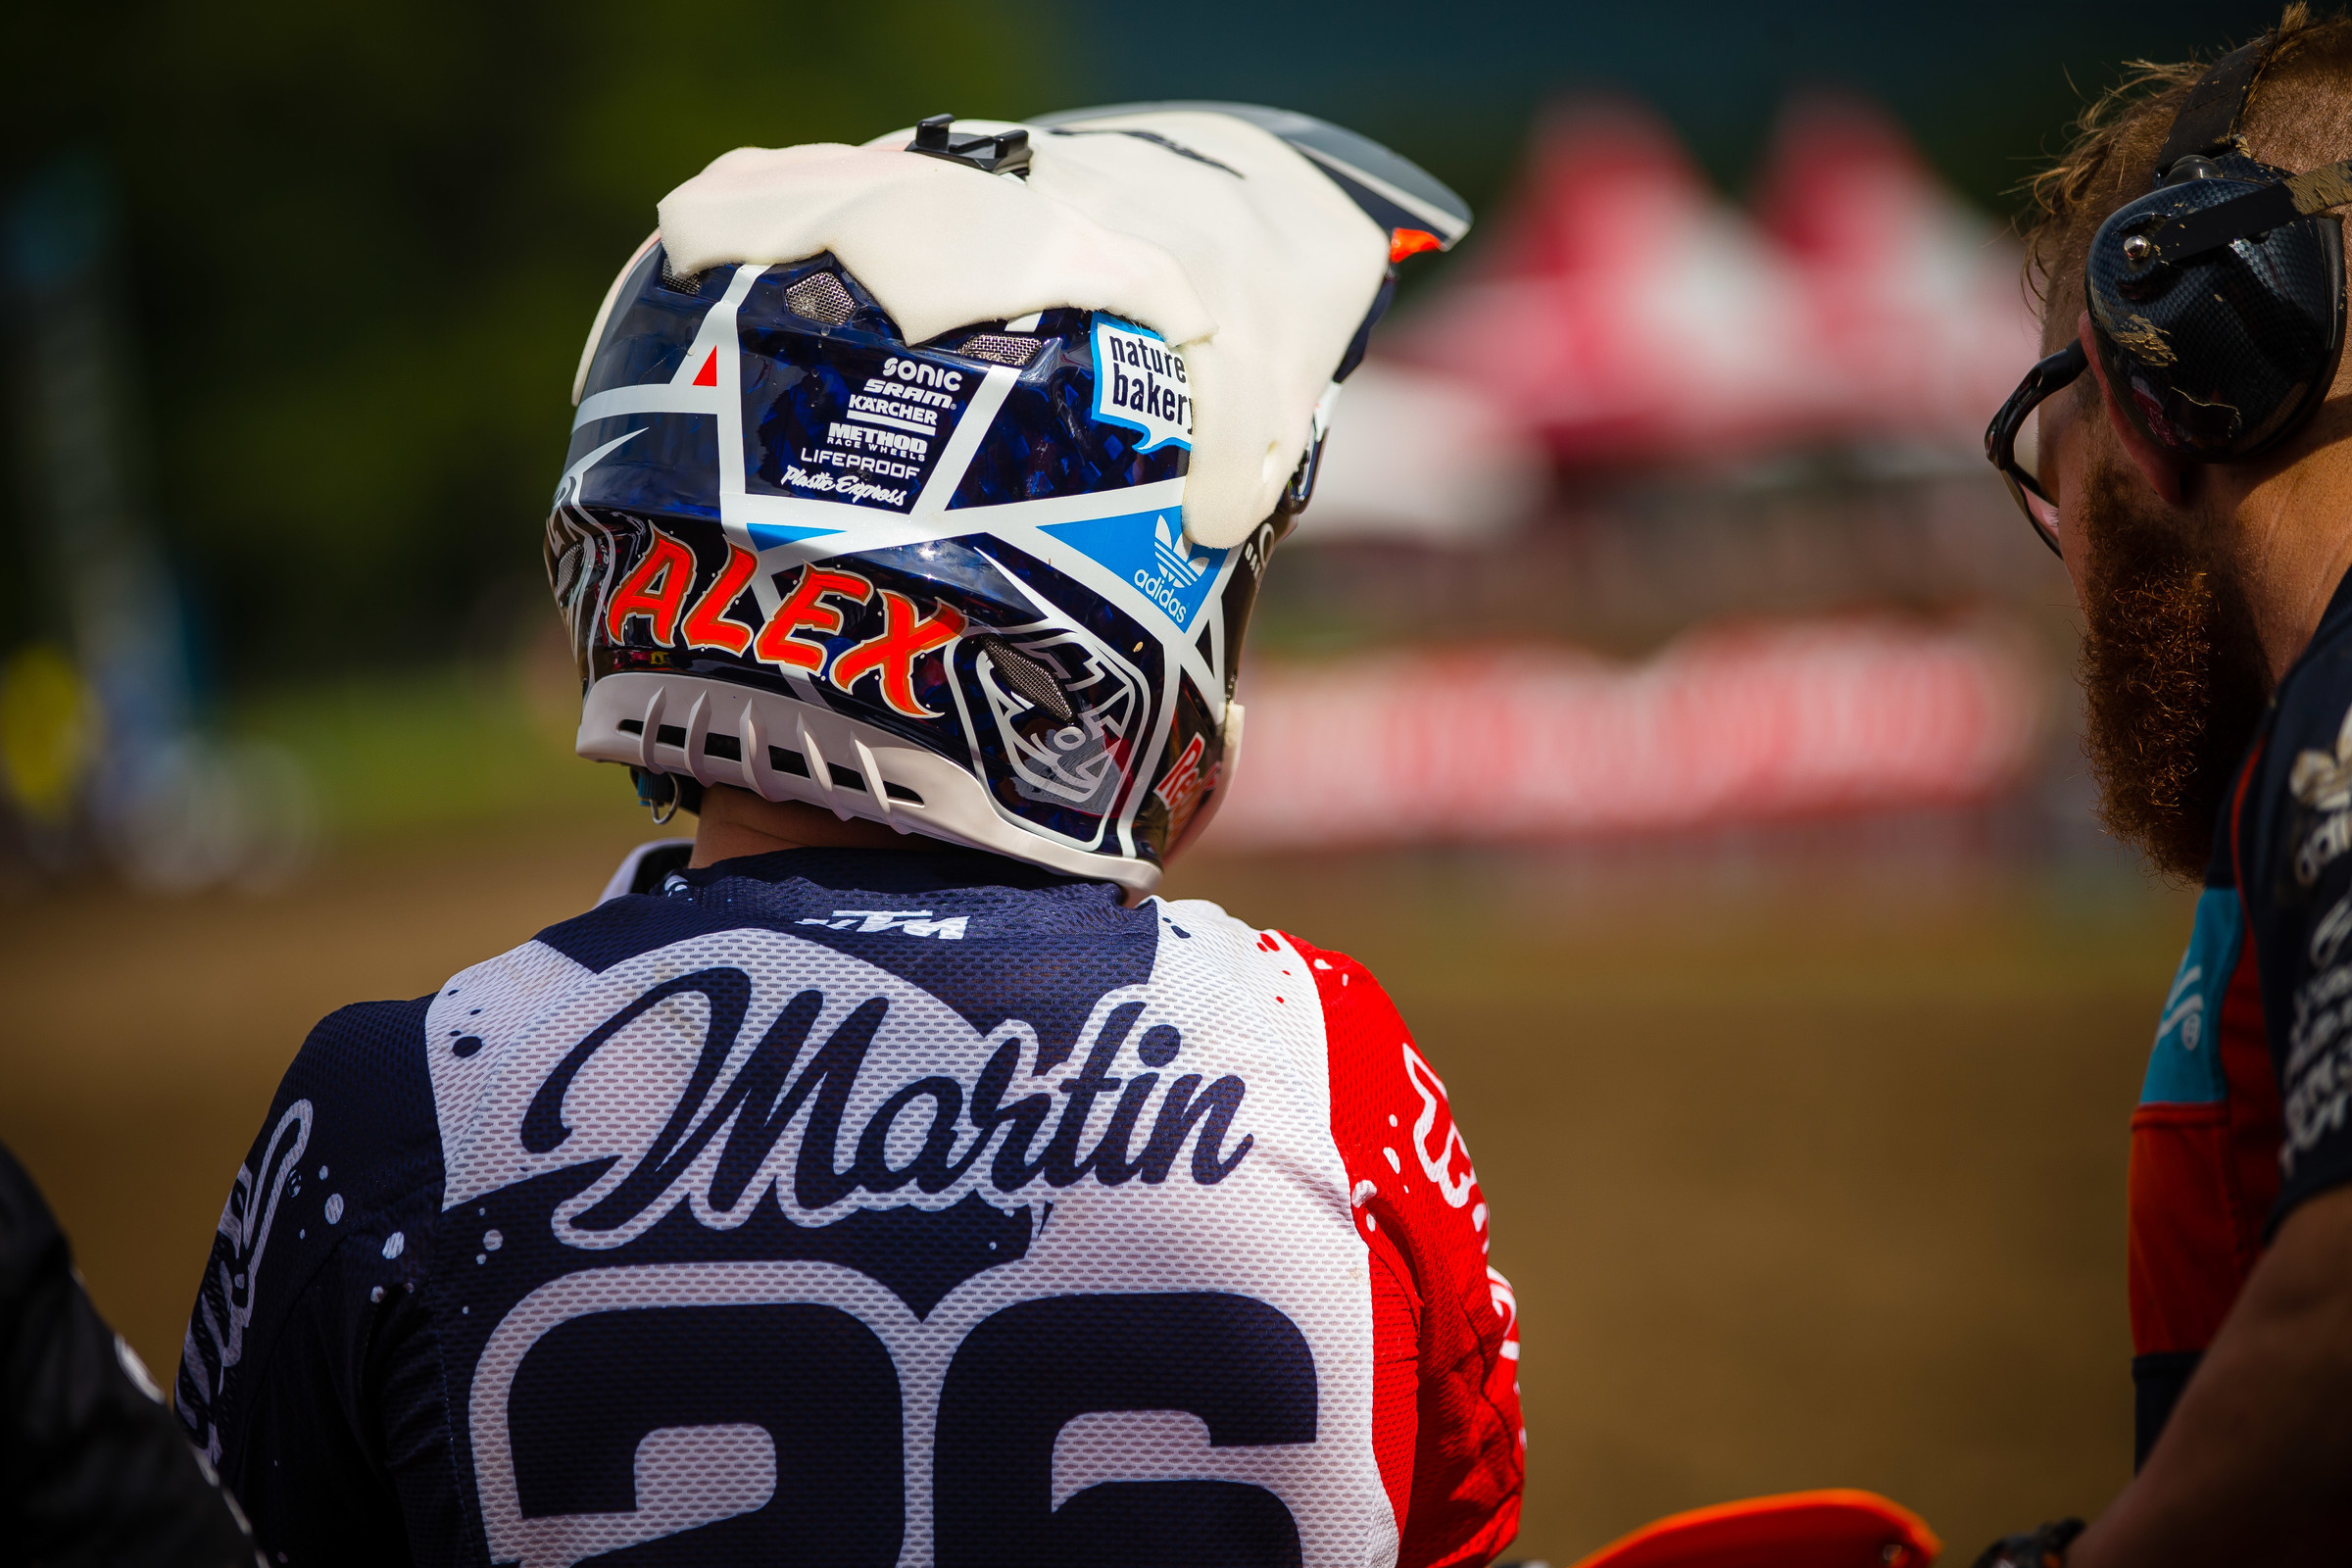 Martin went 6-7 overall at the last two races and is 77 points behind leader Plessinger in championship standings.